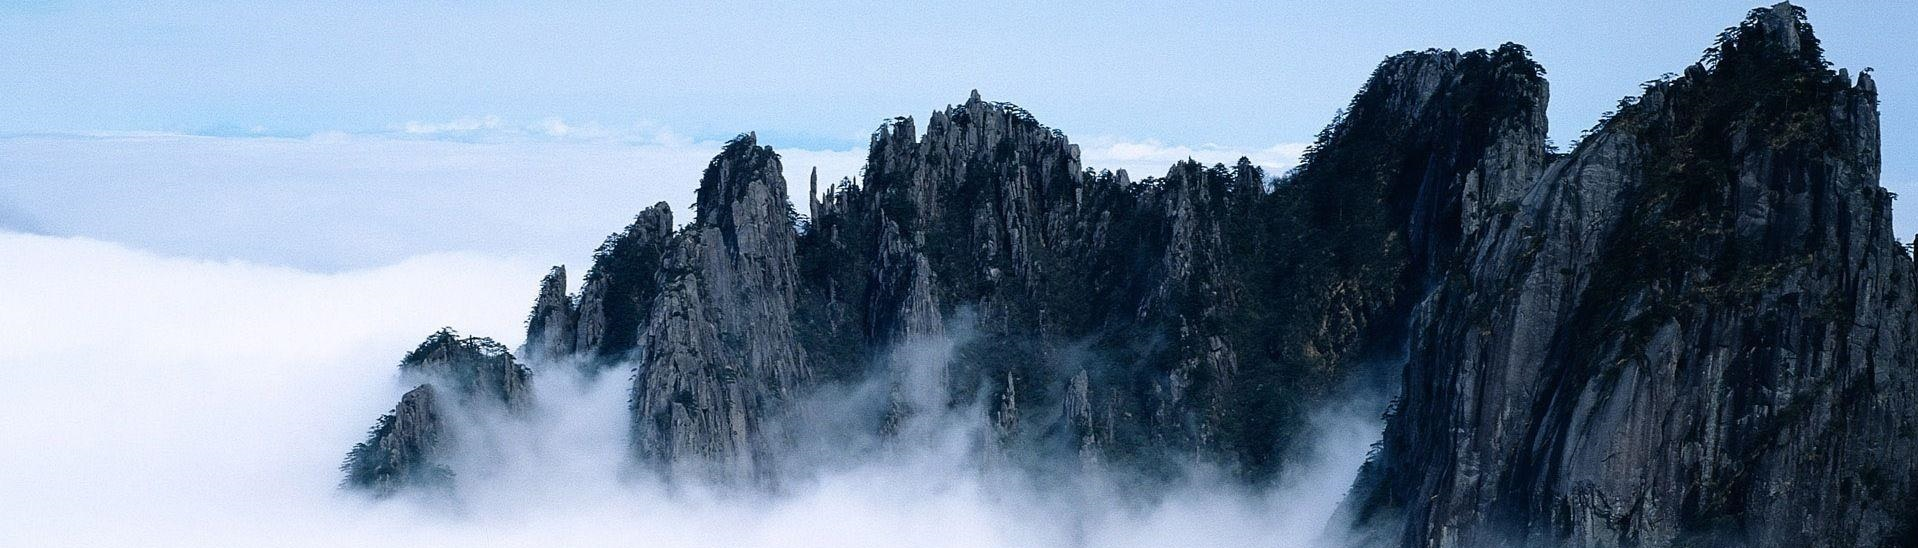 sacred_mountains_of_china-1